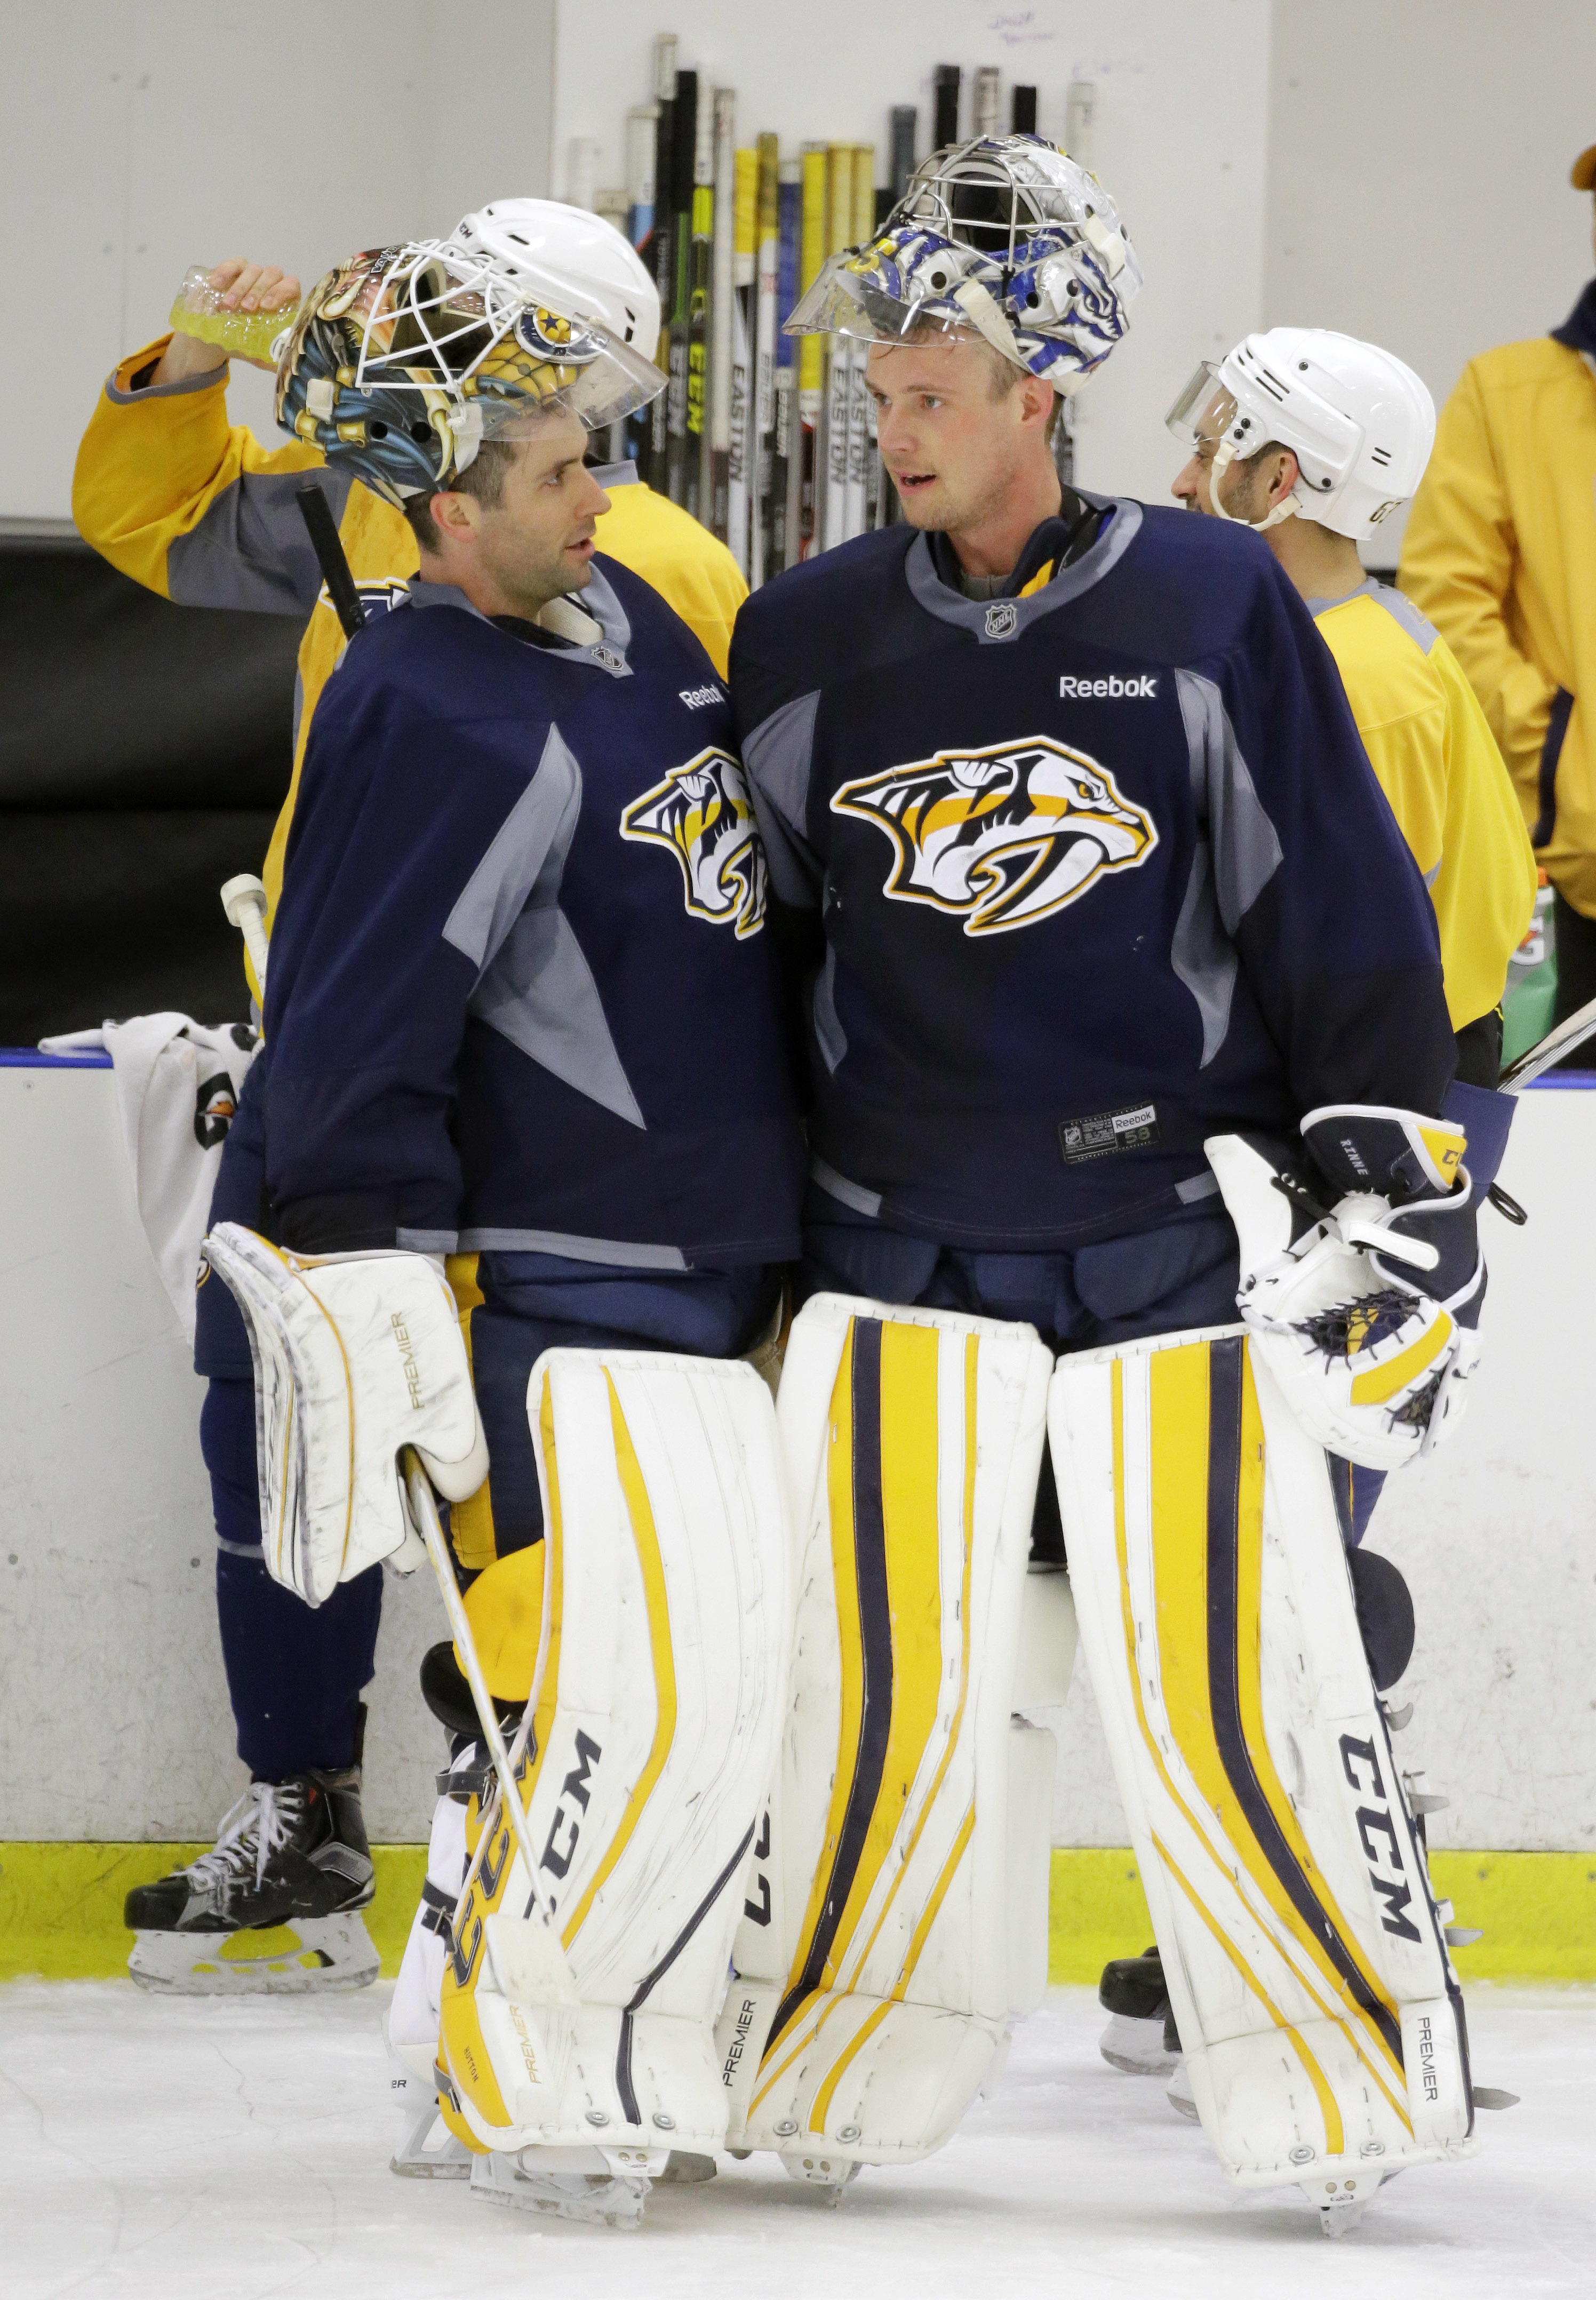 Nashville Predators goaltenders Carter Hutton, left, and Pekka Rinne, right, of Finland, talk during practice Tuesday, April 12, 2016, in Nashville, Tenn. The Predators are scheduled to play the Anaheim Ducks in the first round of the NHL Western Conferen